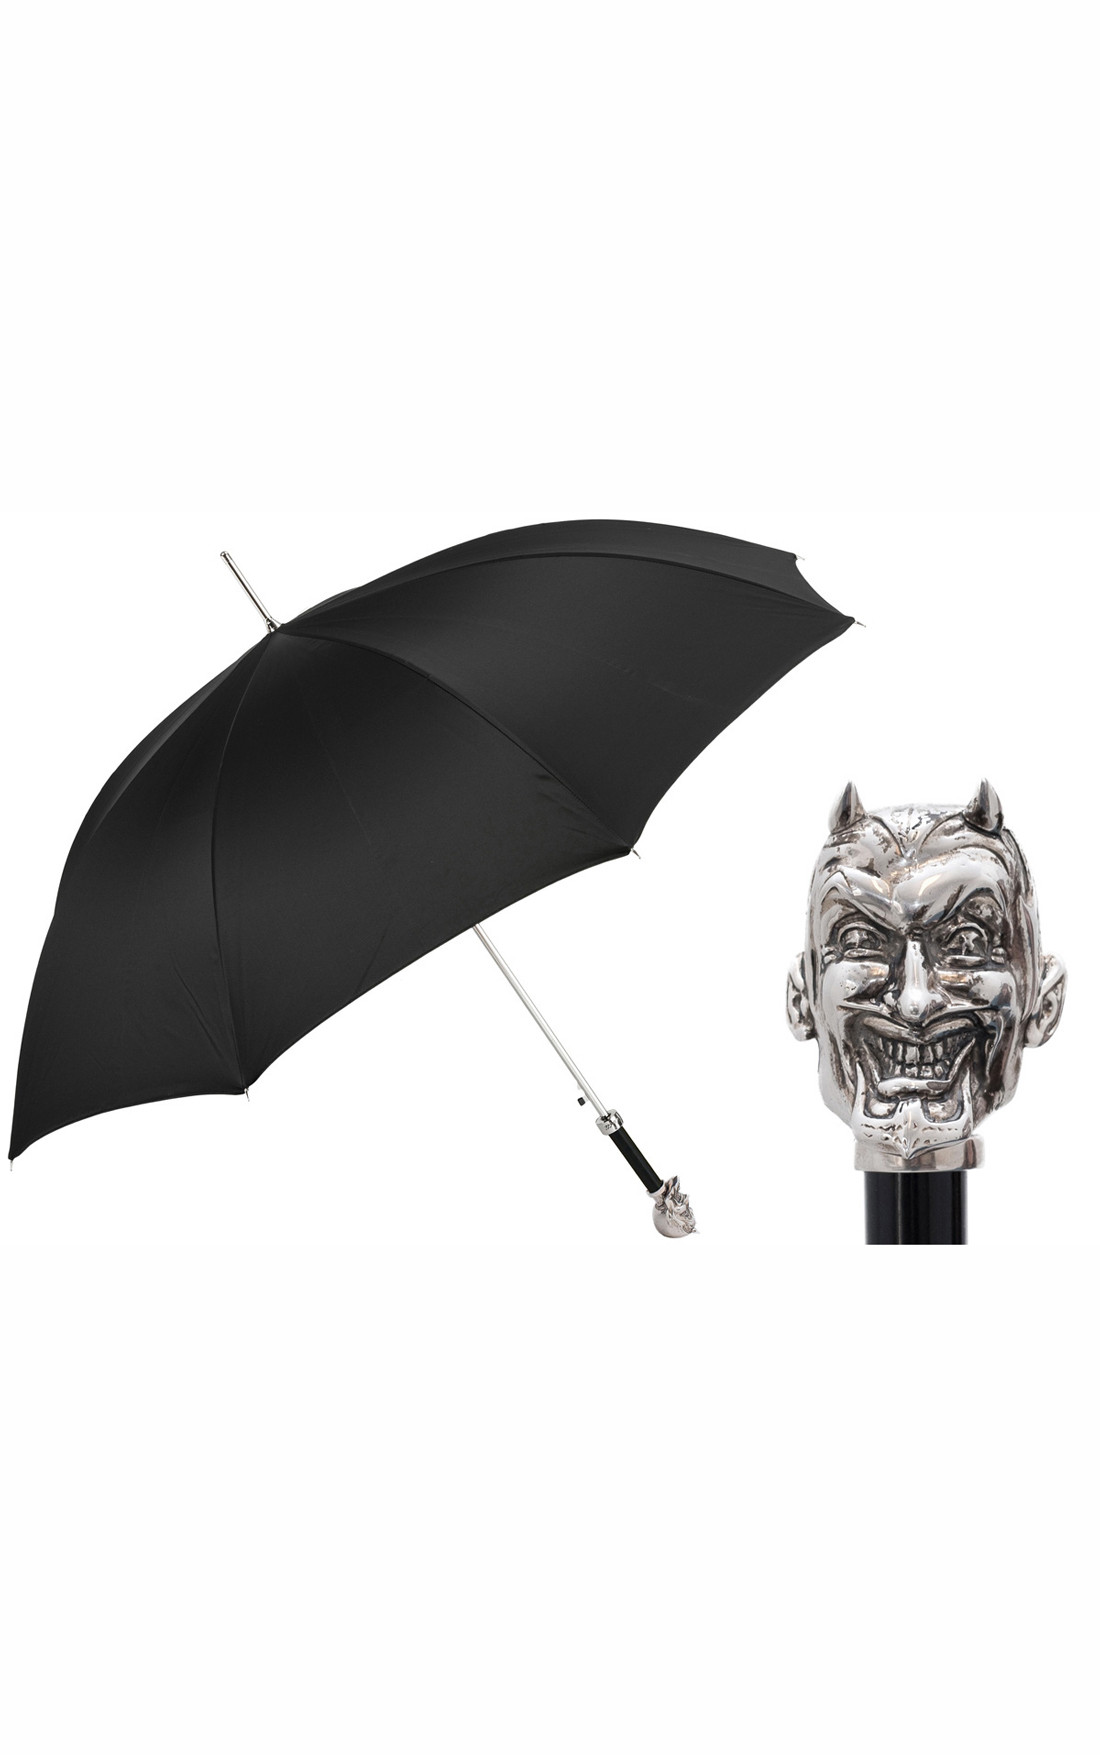 Pasotti - Black Umbrella with Silver Lucifer (478-OXFORD/18-K77-LUCIFER-NICKEL)